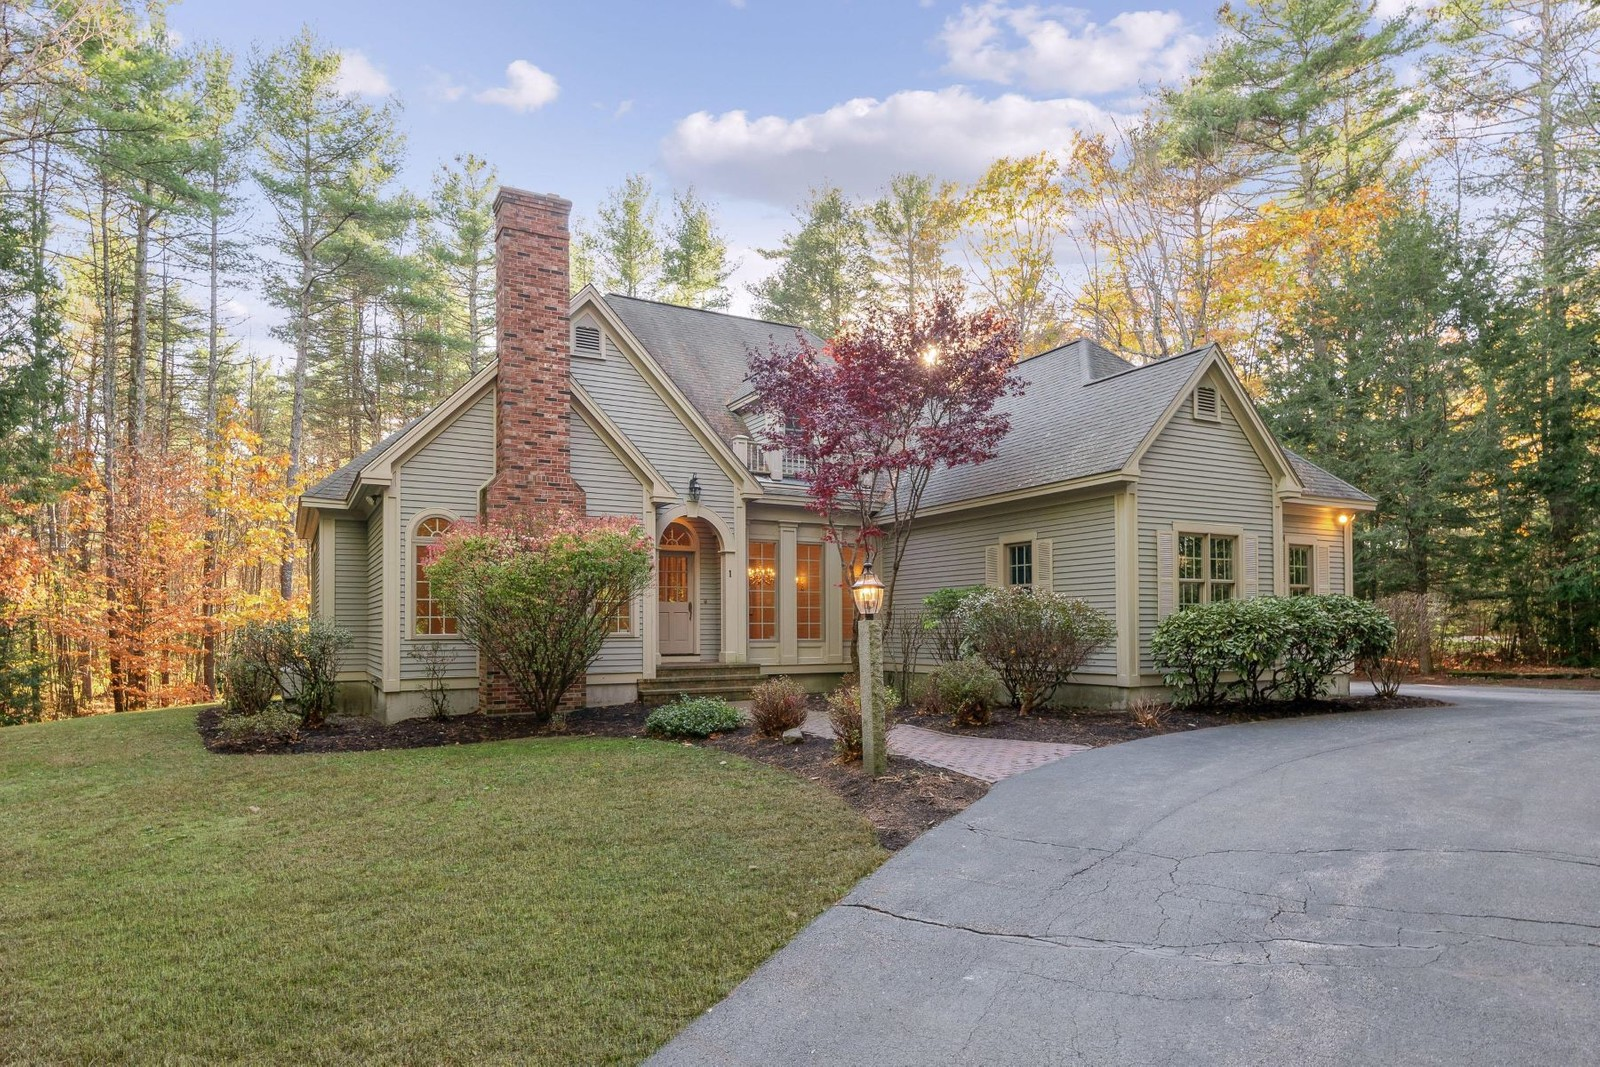 Single Family Homes for Sale at Falmouth, ME 04105